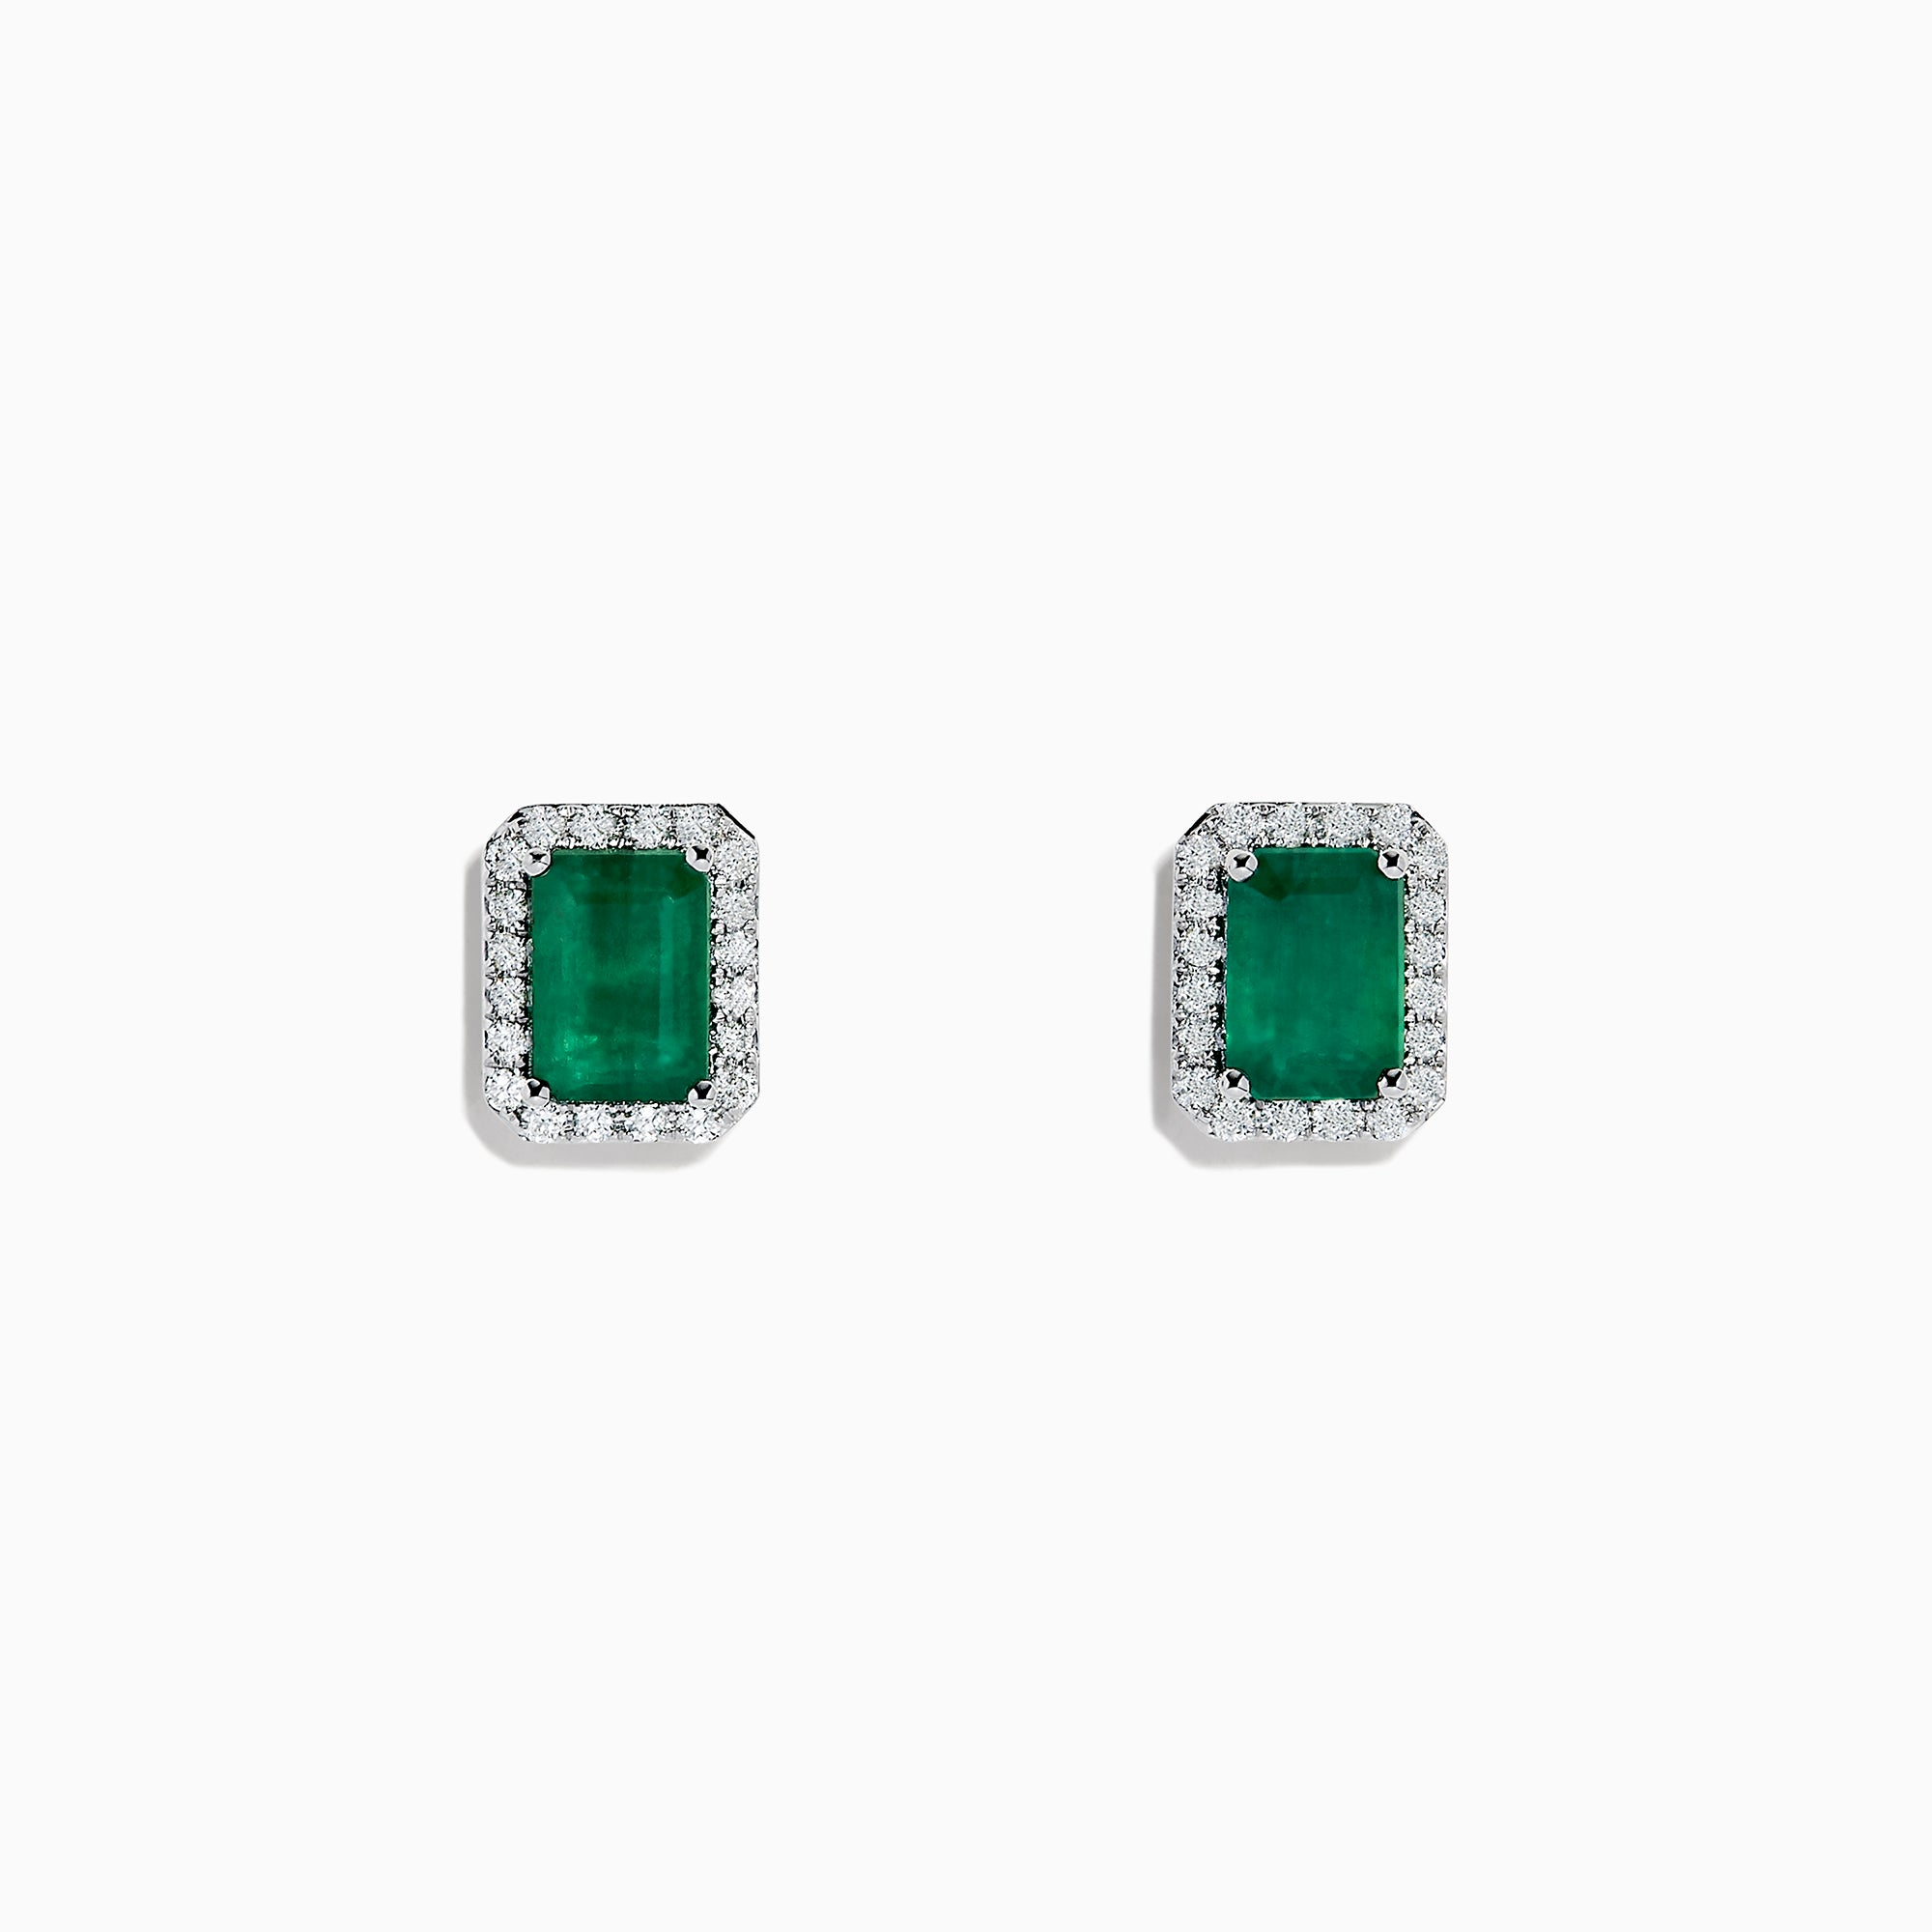 Effy Brasilica 14K White Gold Emerald and Diamond Earrings, 2.15 TCW